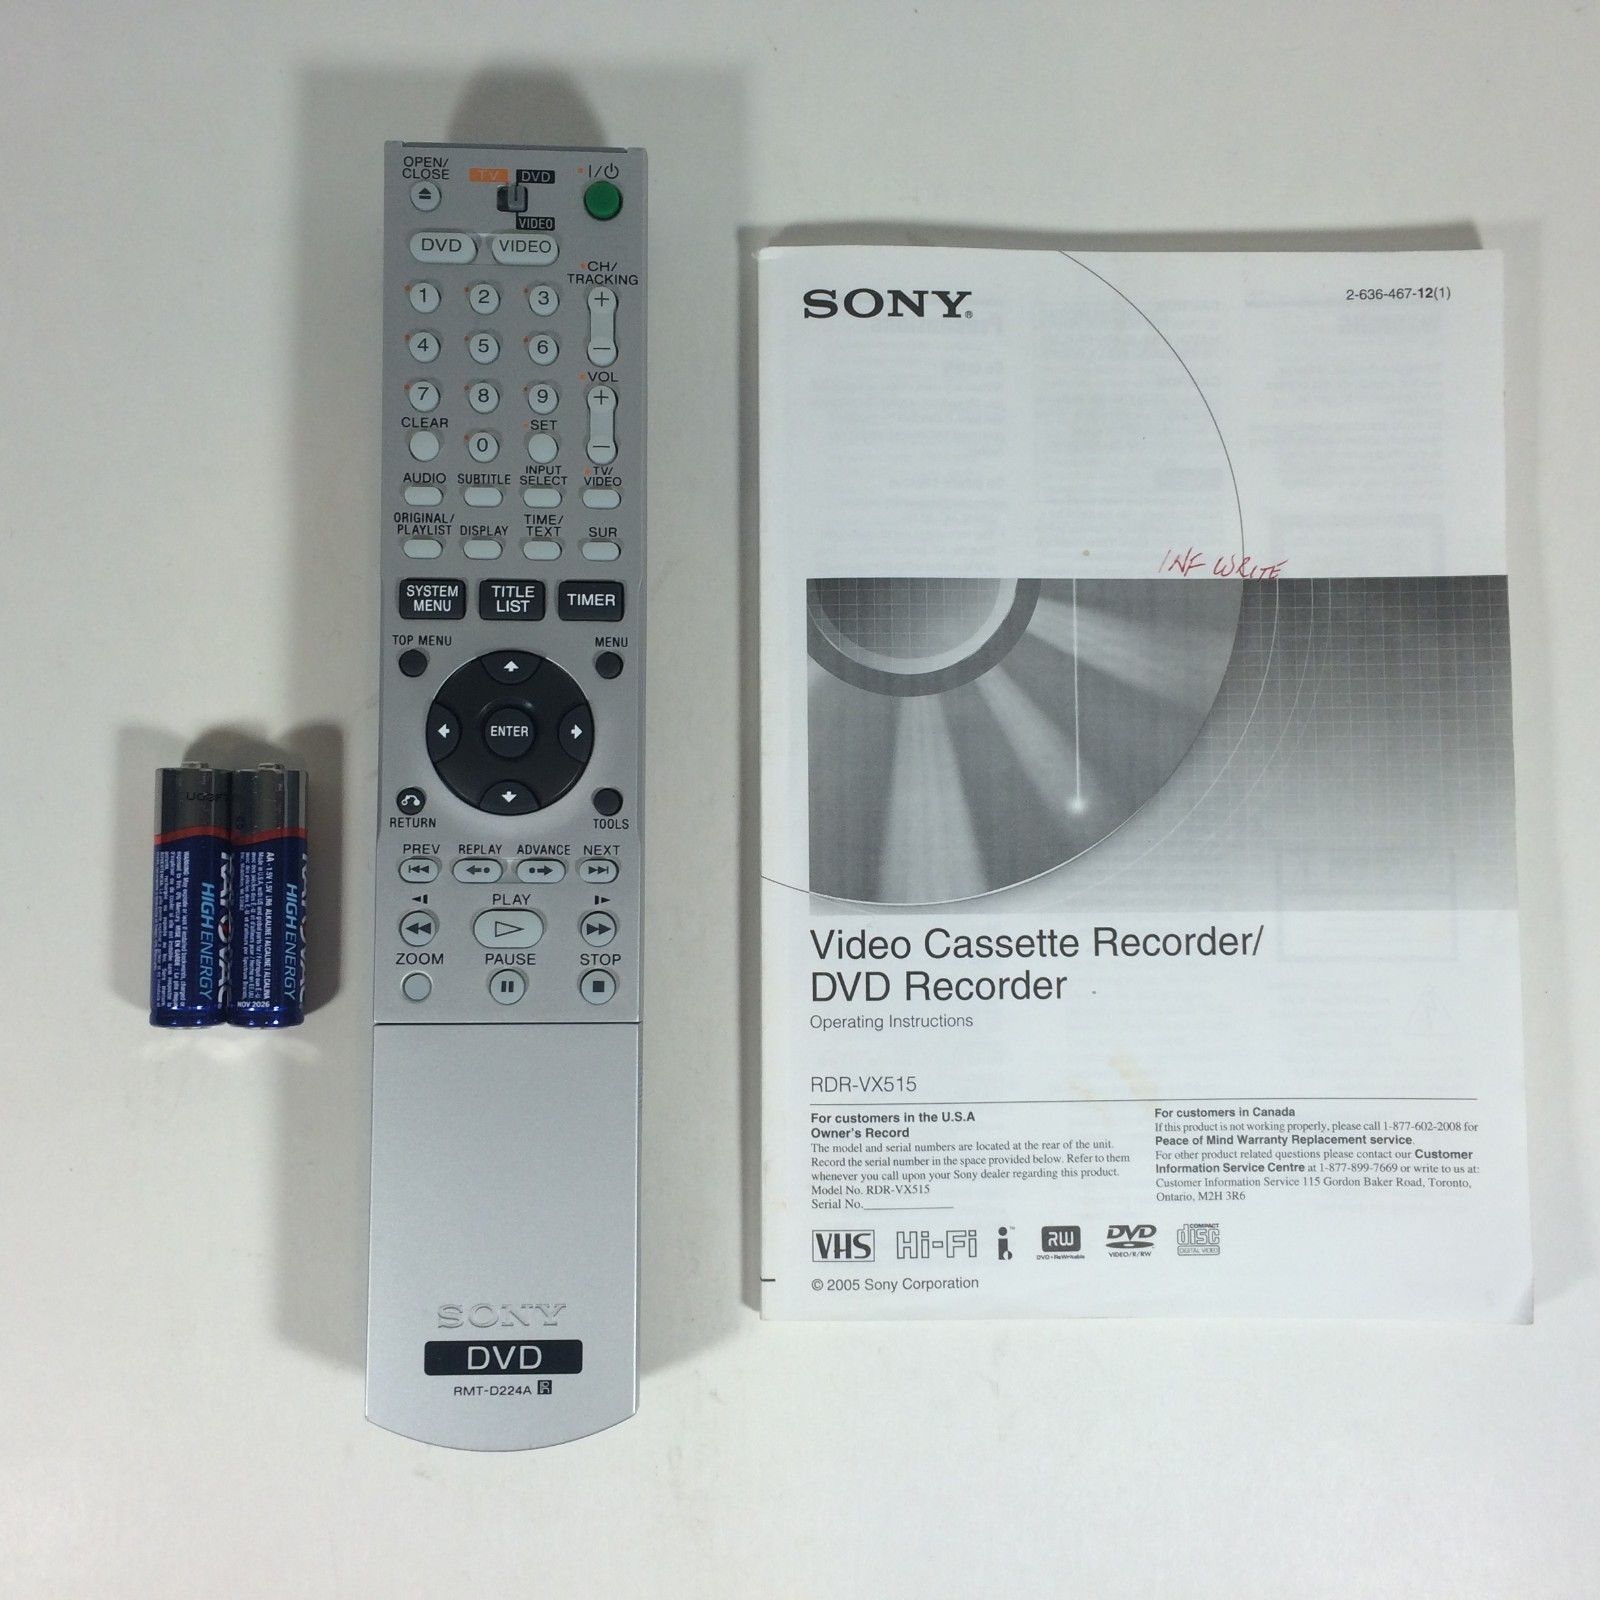 sony rmt d224a replacement remote control and 24 similar items rh bonanza com sony rdr vx515 manual download sony rdr-vx515 manual